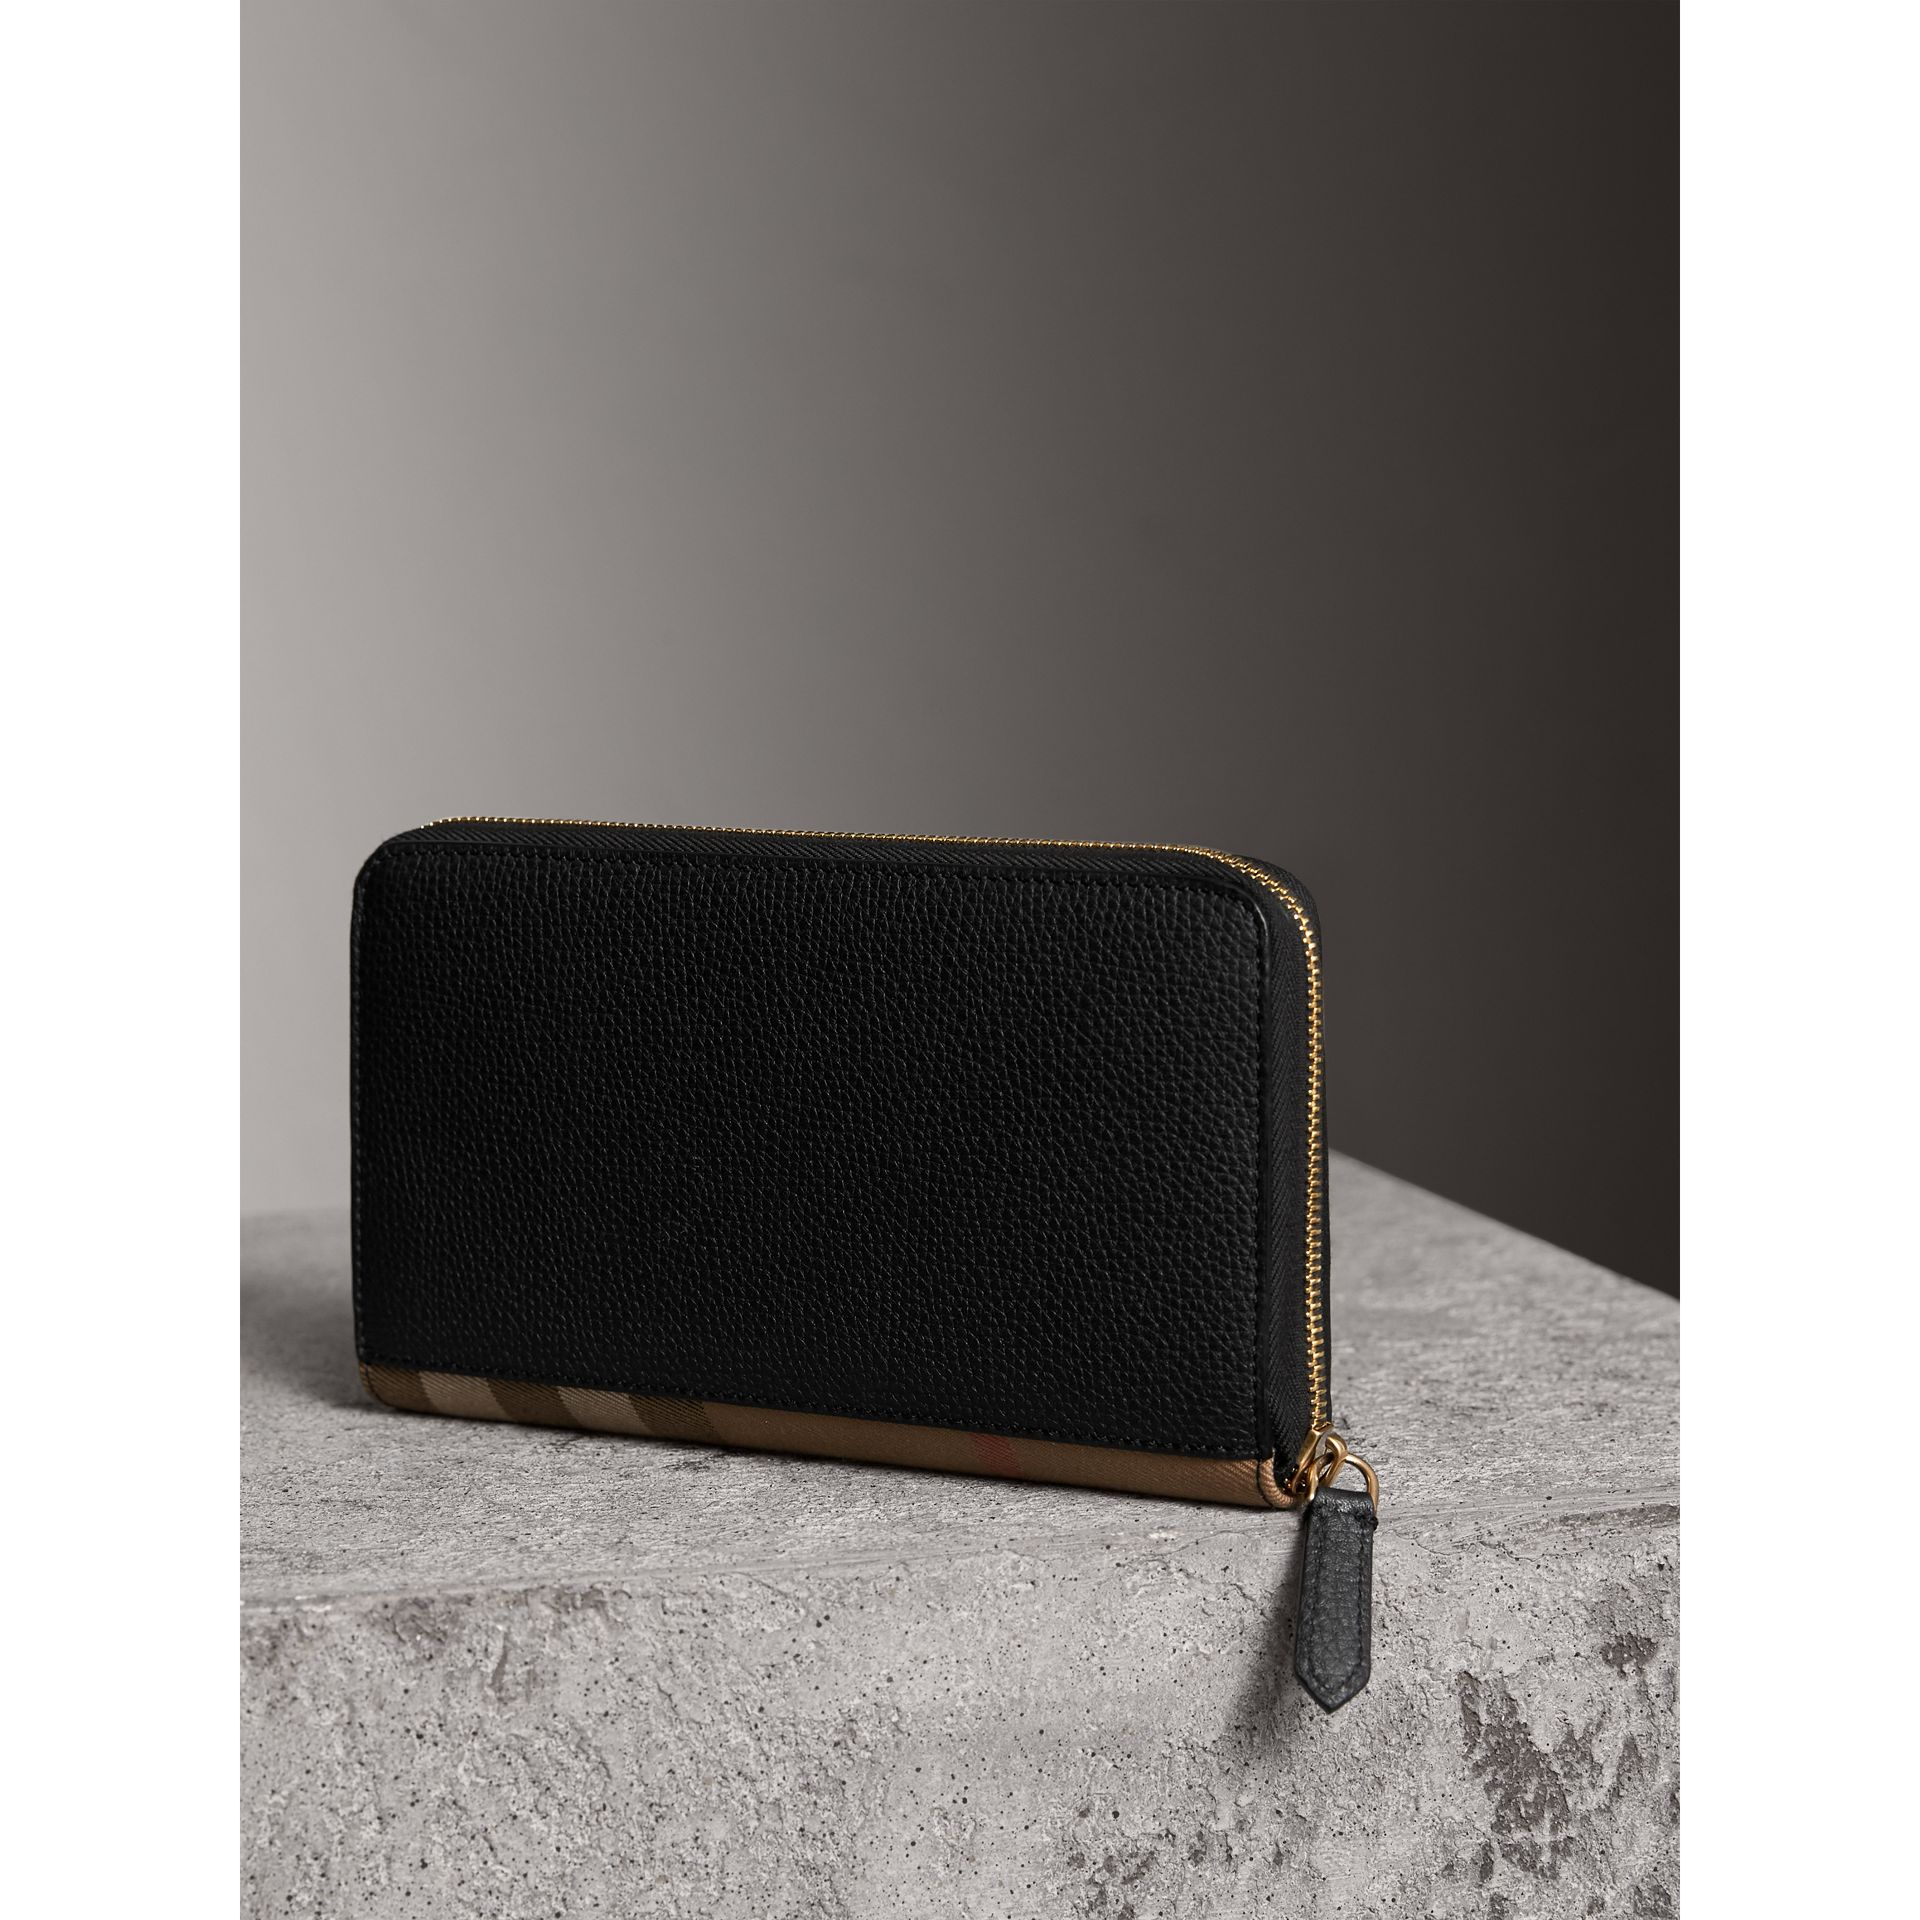 House Check and Grainy Leather Ziparound Wallet in Black | Burberry United States - gallery image 2